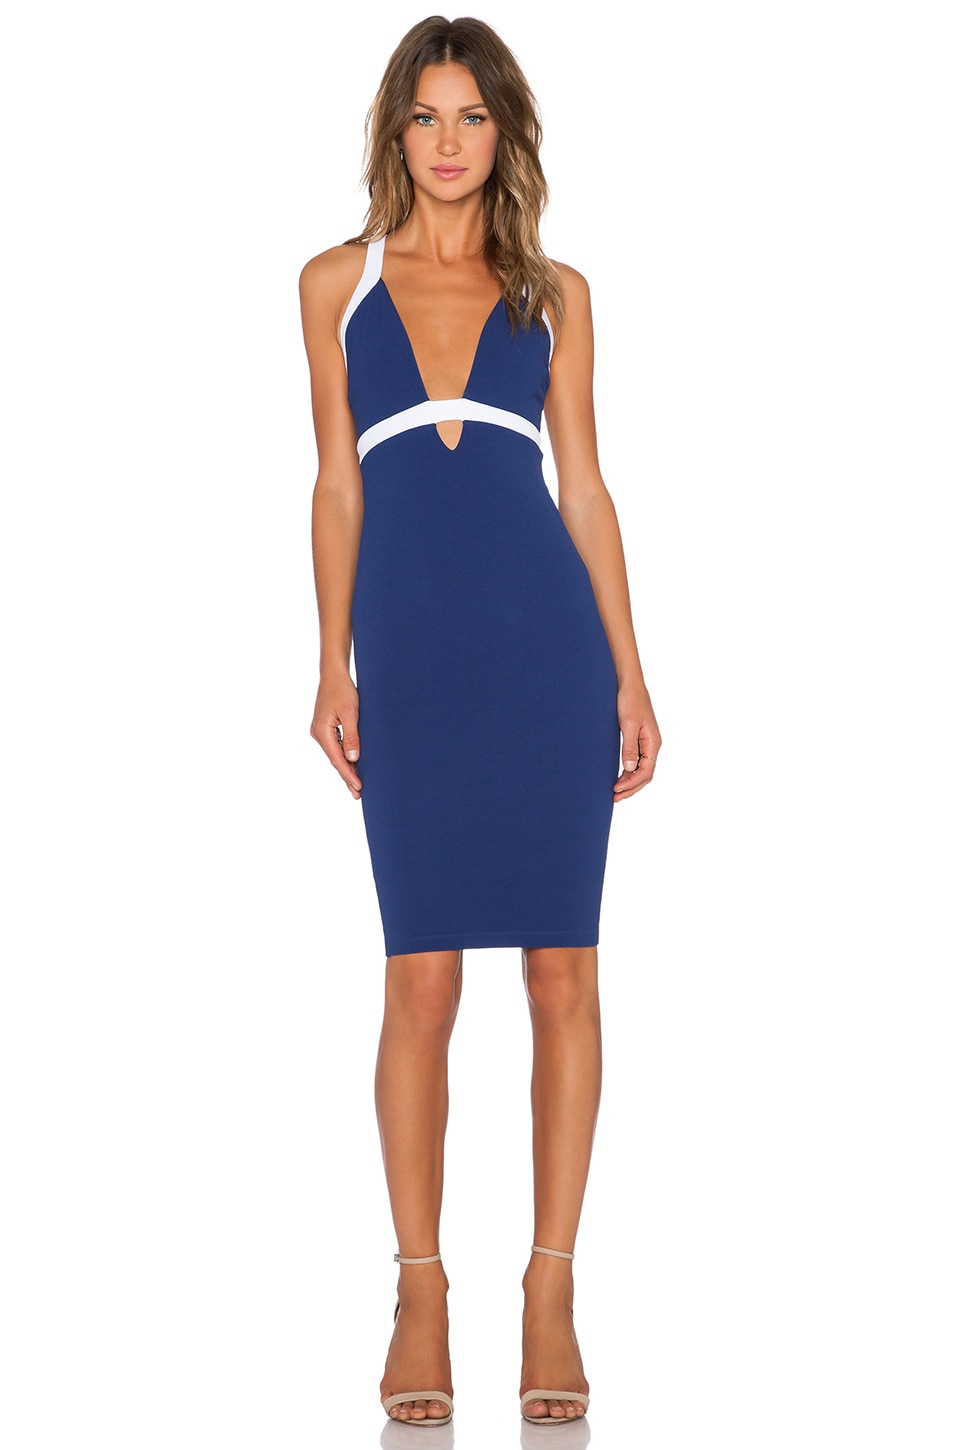 Nookie Eva Bodycon Dress in Navy & White